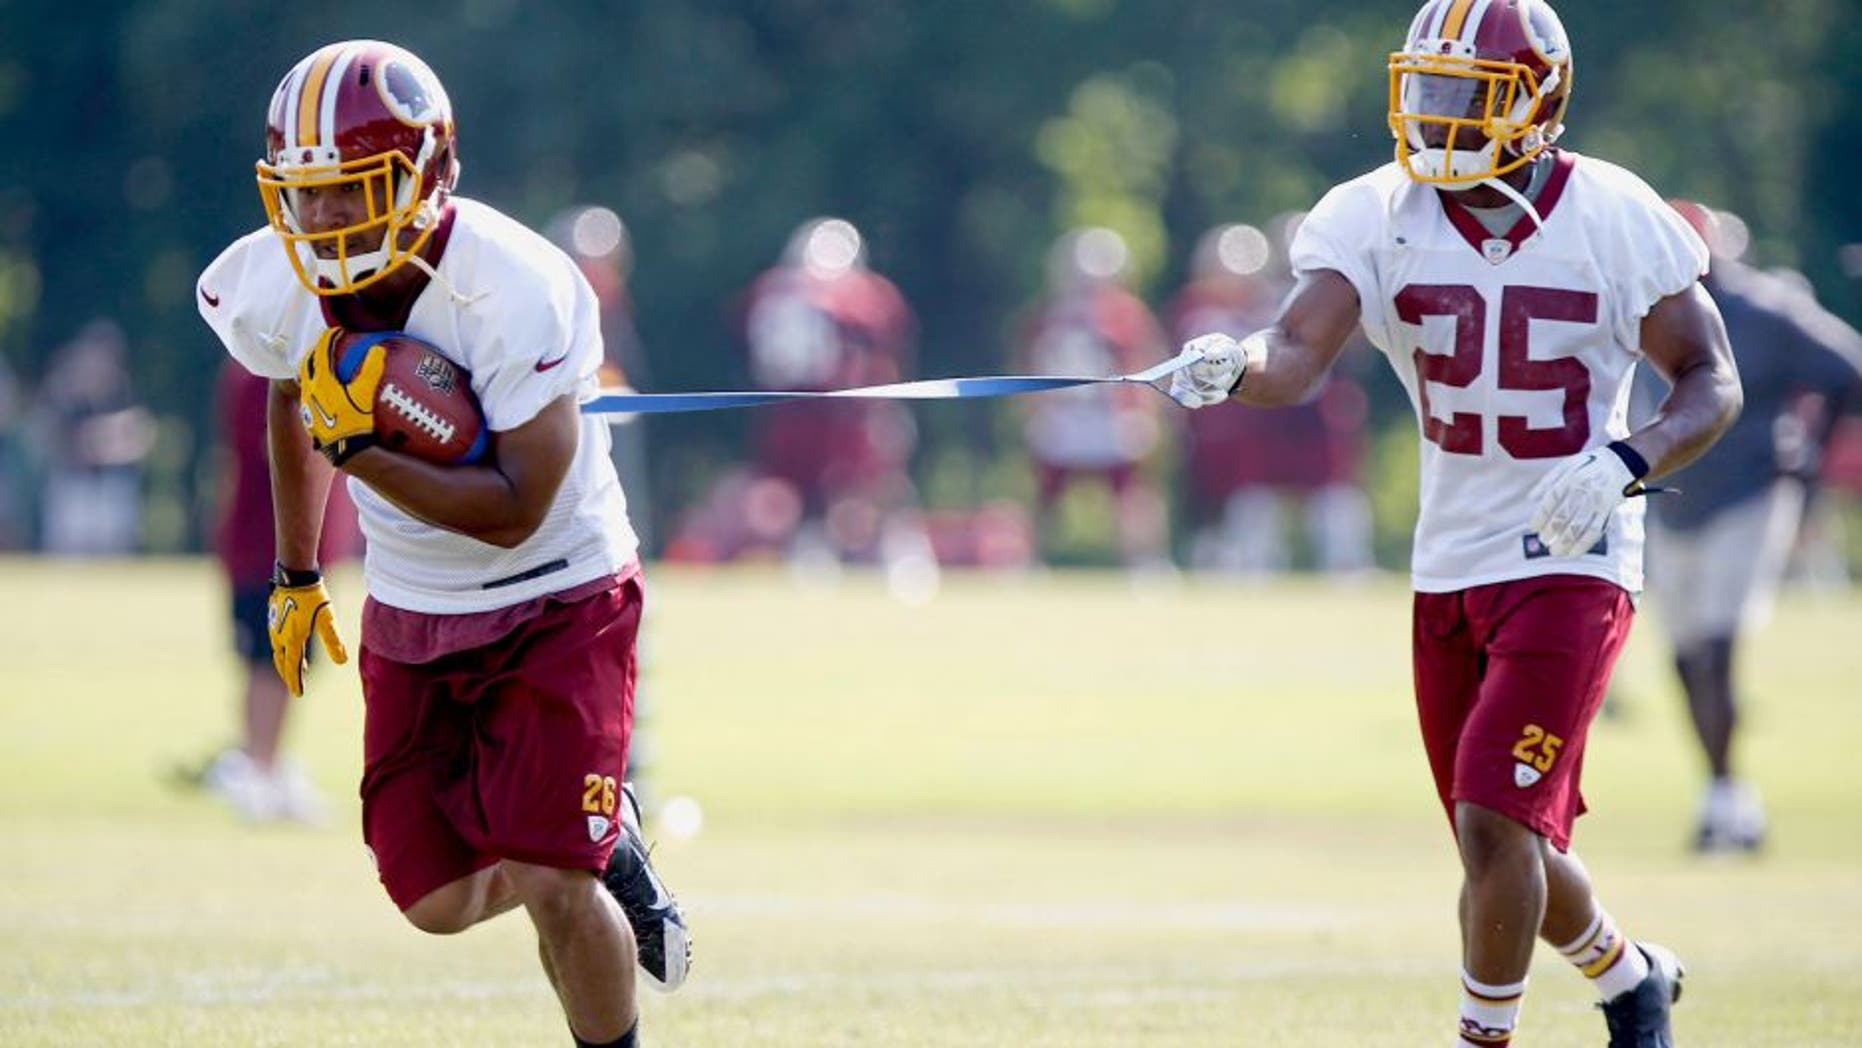 Jun 17, 2014; Ashburn, VA, USA; Washington Redskins running back Evan Royster (26) and Redskins running back Chris Thompson (25) participate in drills during minicamp at Redskins Park. Mandatory Credit: Geoff Burke-USA TODAY Sports